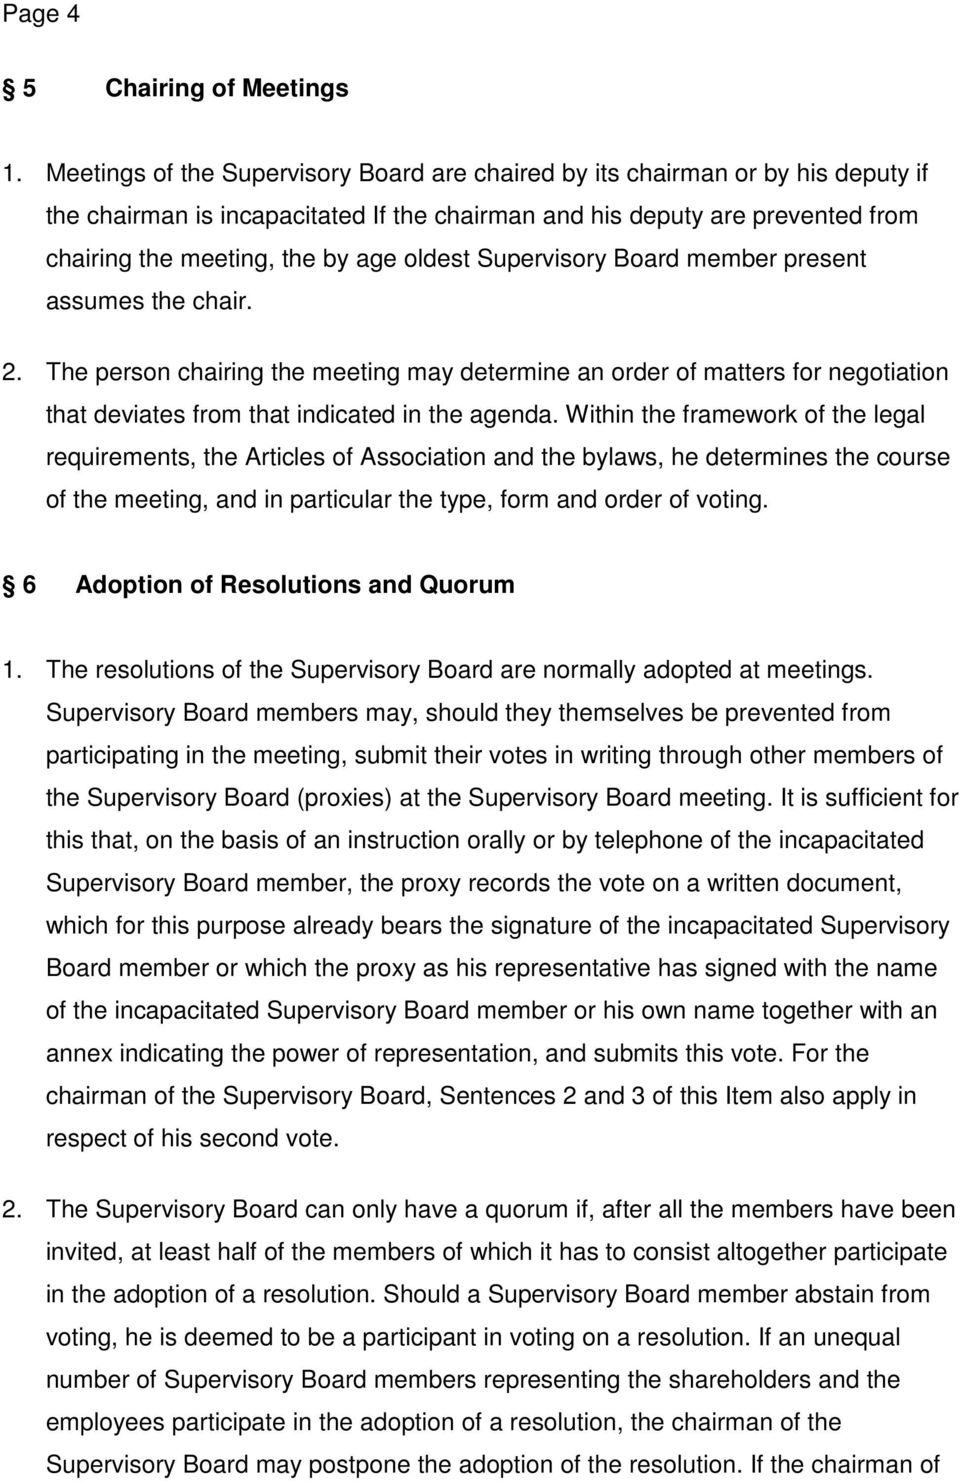 oldest Supervisory Board member present assumes the chair. 2. The person chairing the meeting may determine an order of matters for negotiation that deviates from that indicated in the agenda.